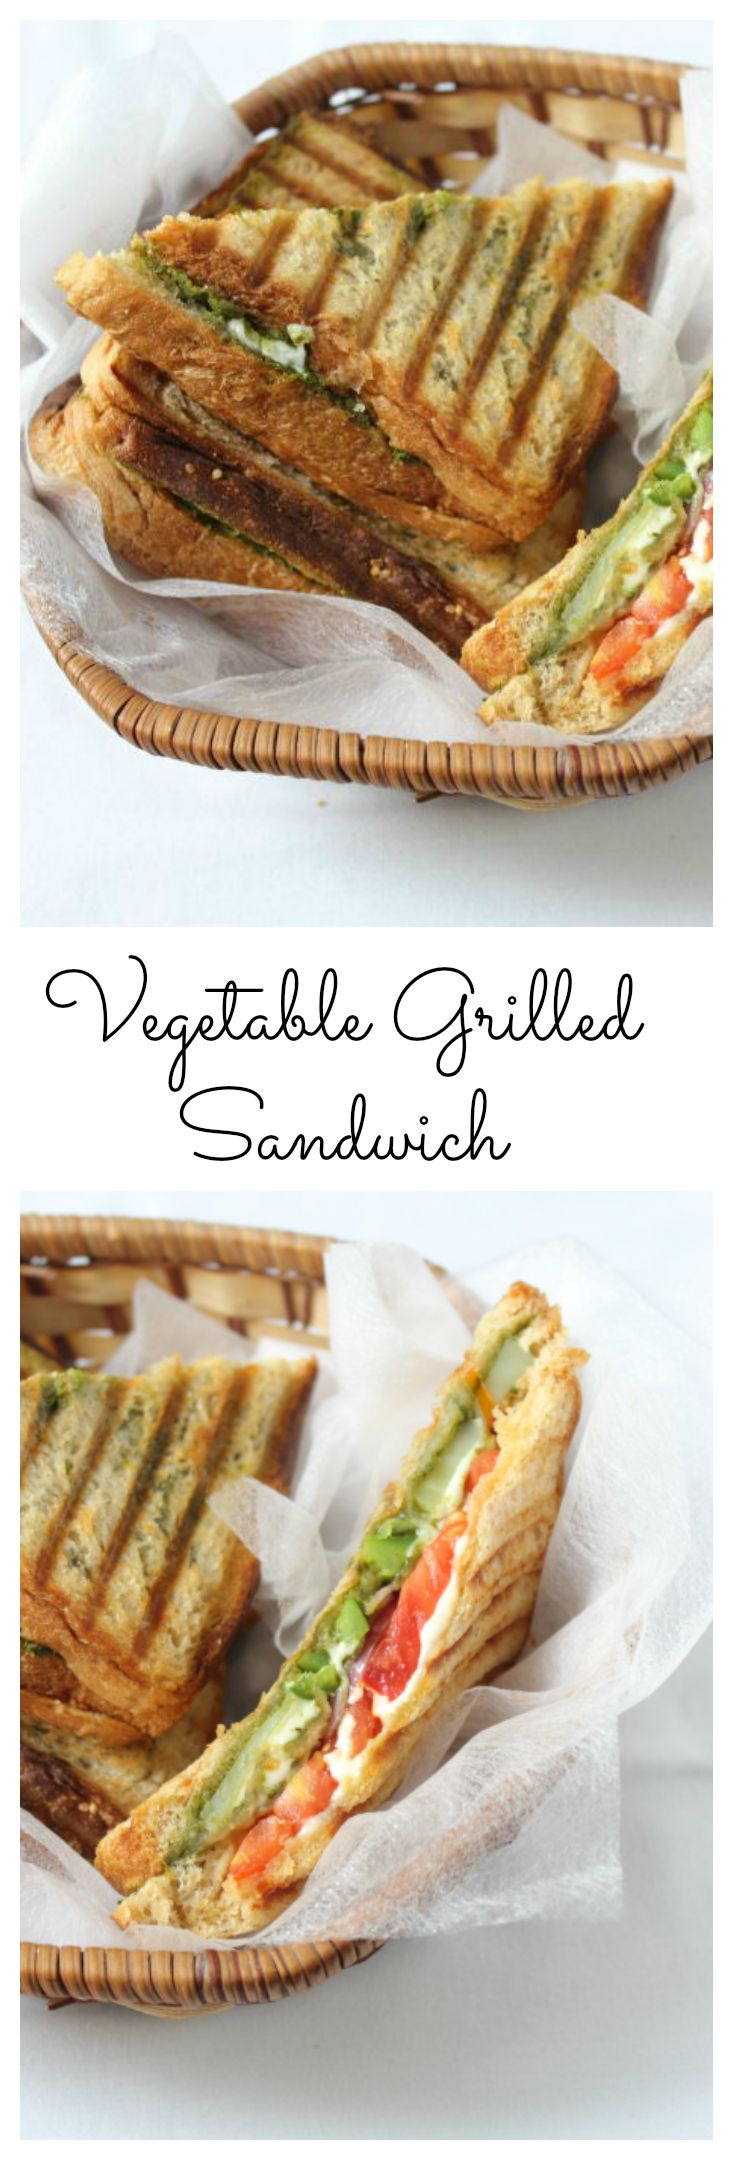 Veg grilled sandwich - Pinterest